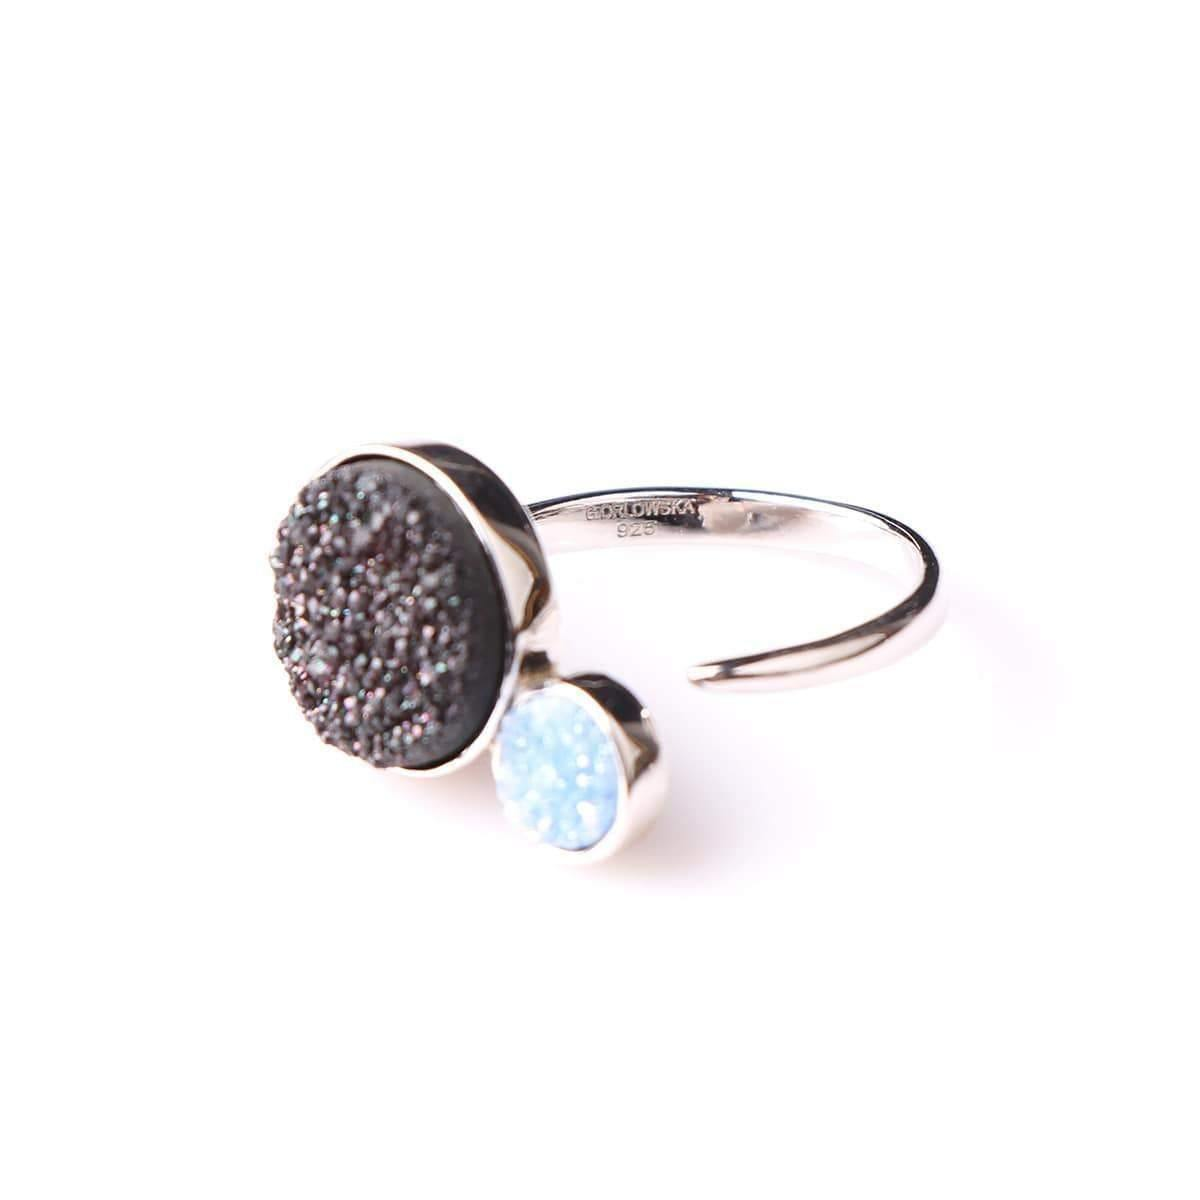 Alice Black & Small Baby Blue Orbit Ring - Tanzire Store